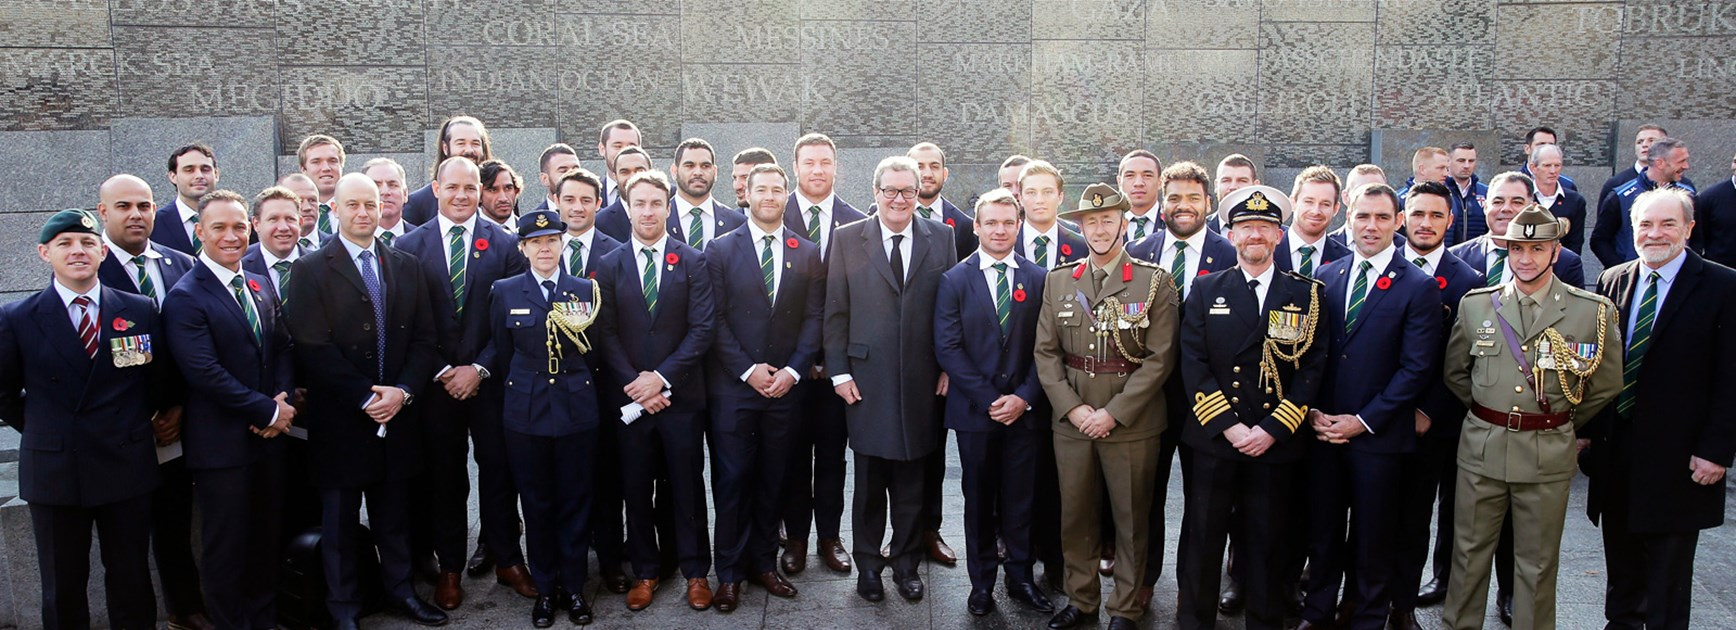 Kangaroos players and offiicals at the Australian War Memorial in Hyde Park in London.